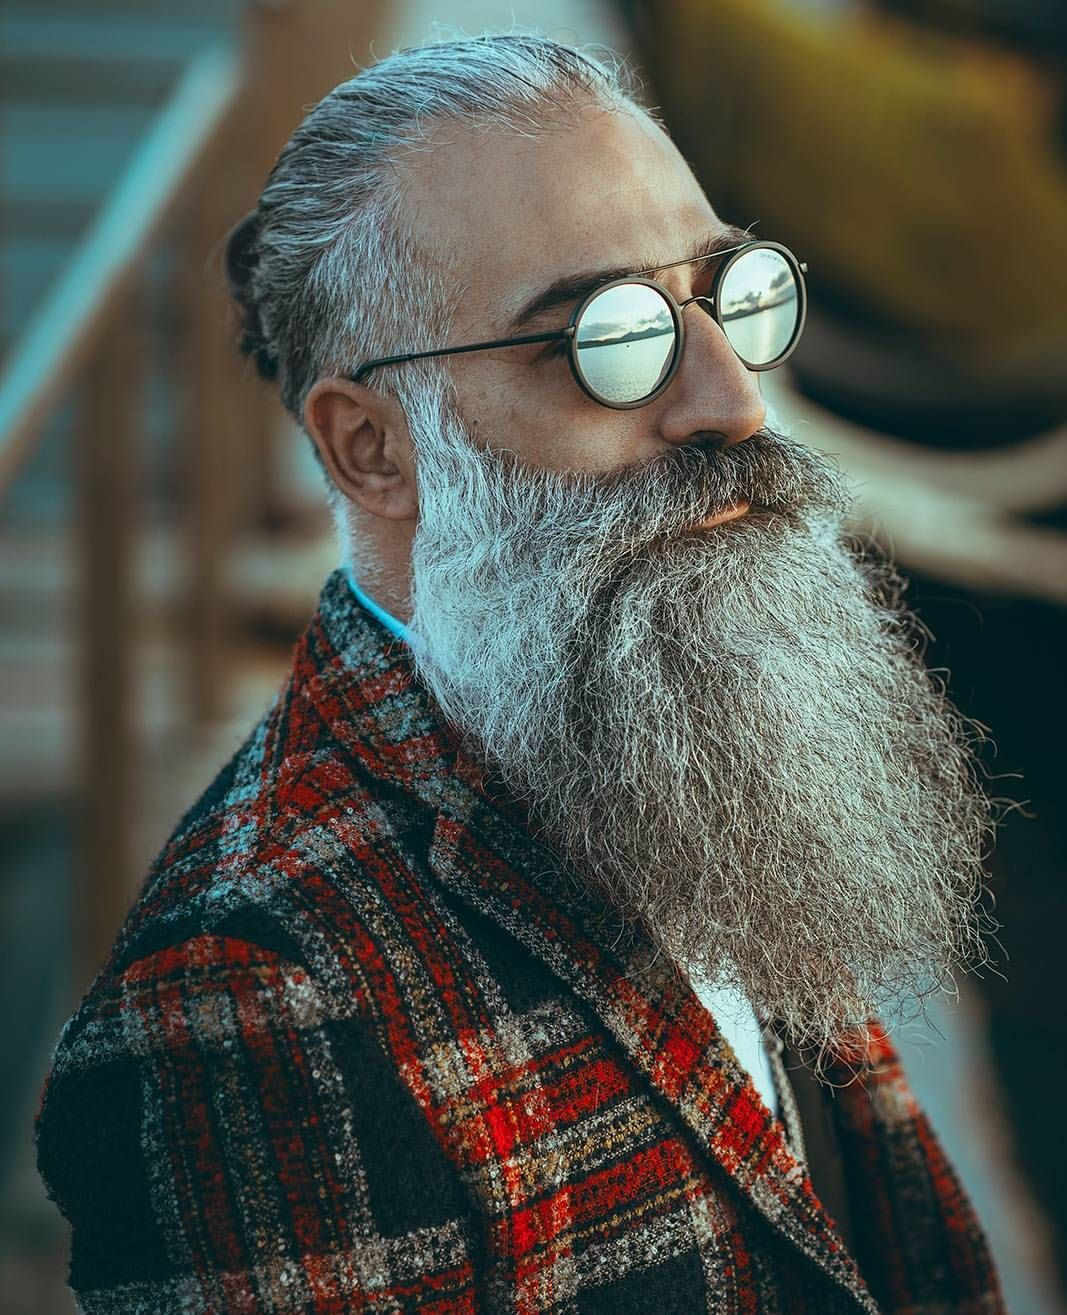 Pin on Beards and glasses